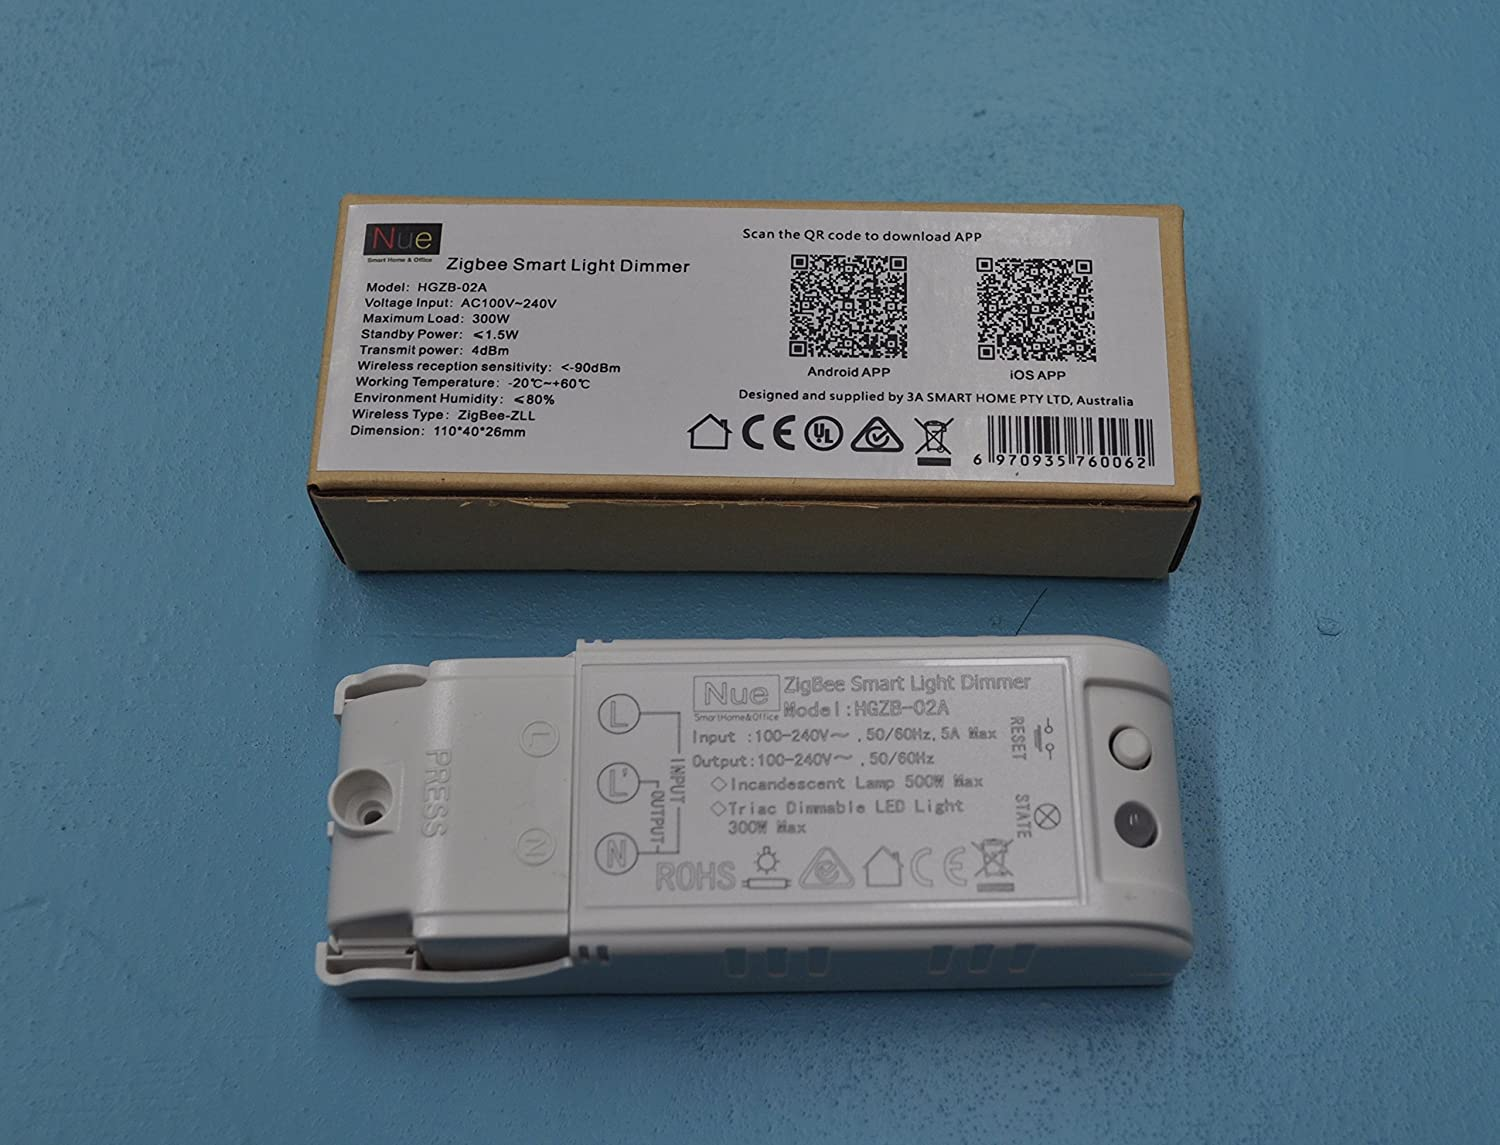 Au Nz Approved Smart Zigbee In Ceiling Light Dimmer For Upgrading Triac Based Lamp Normal Lights And Switches To Wireless Home Automation Google Amazon Echo Dot